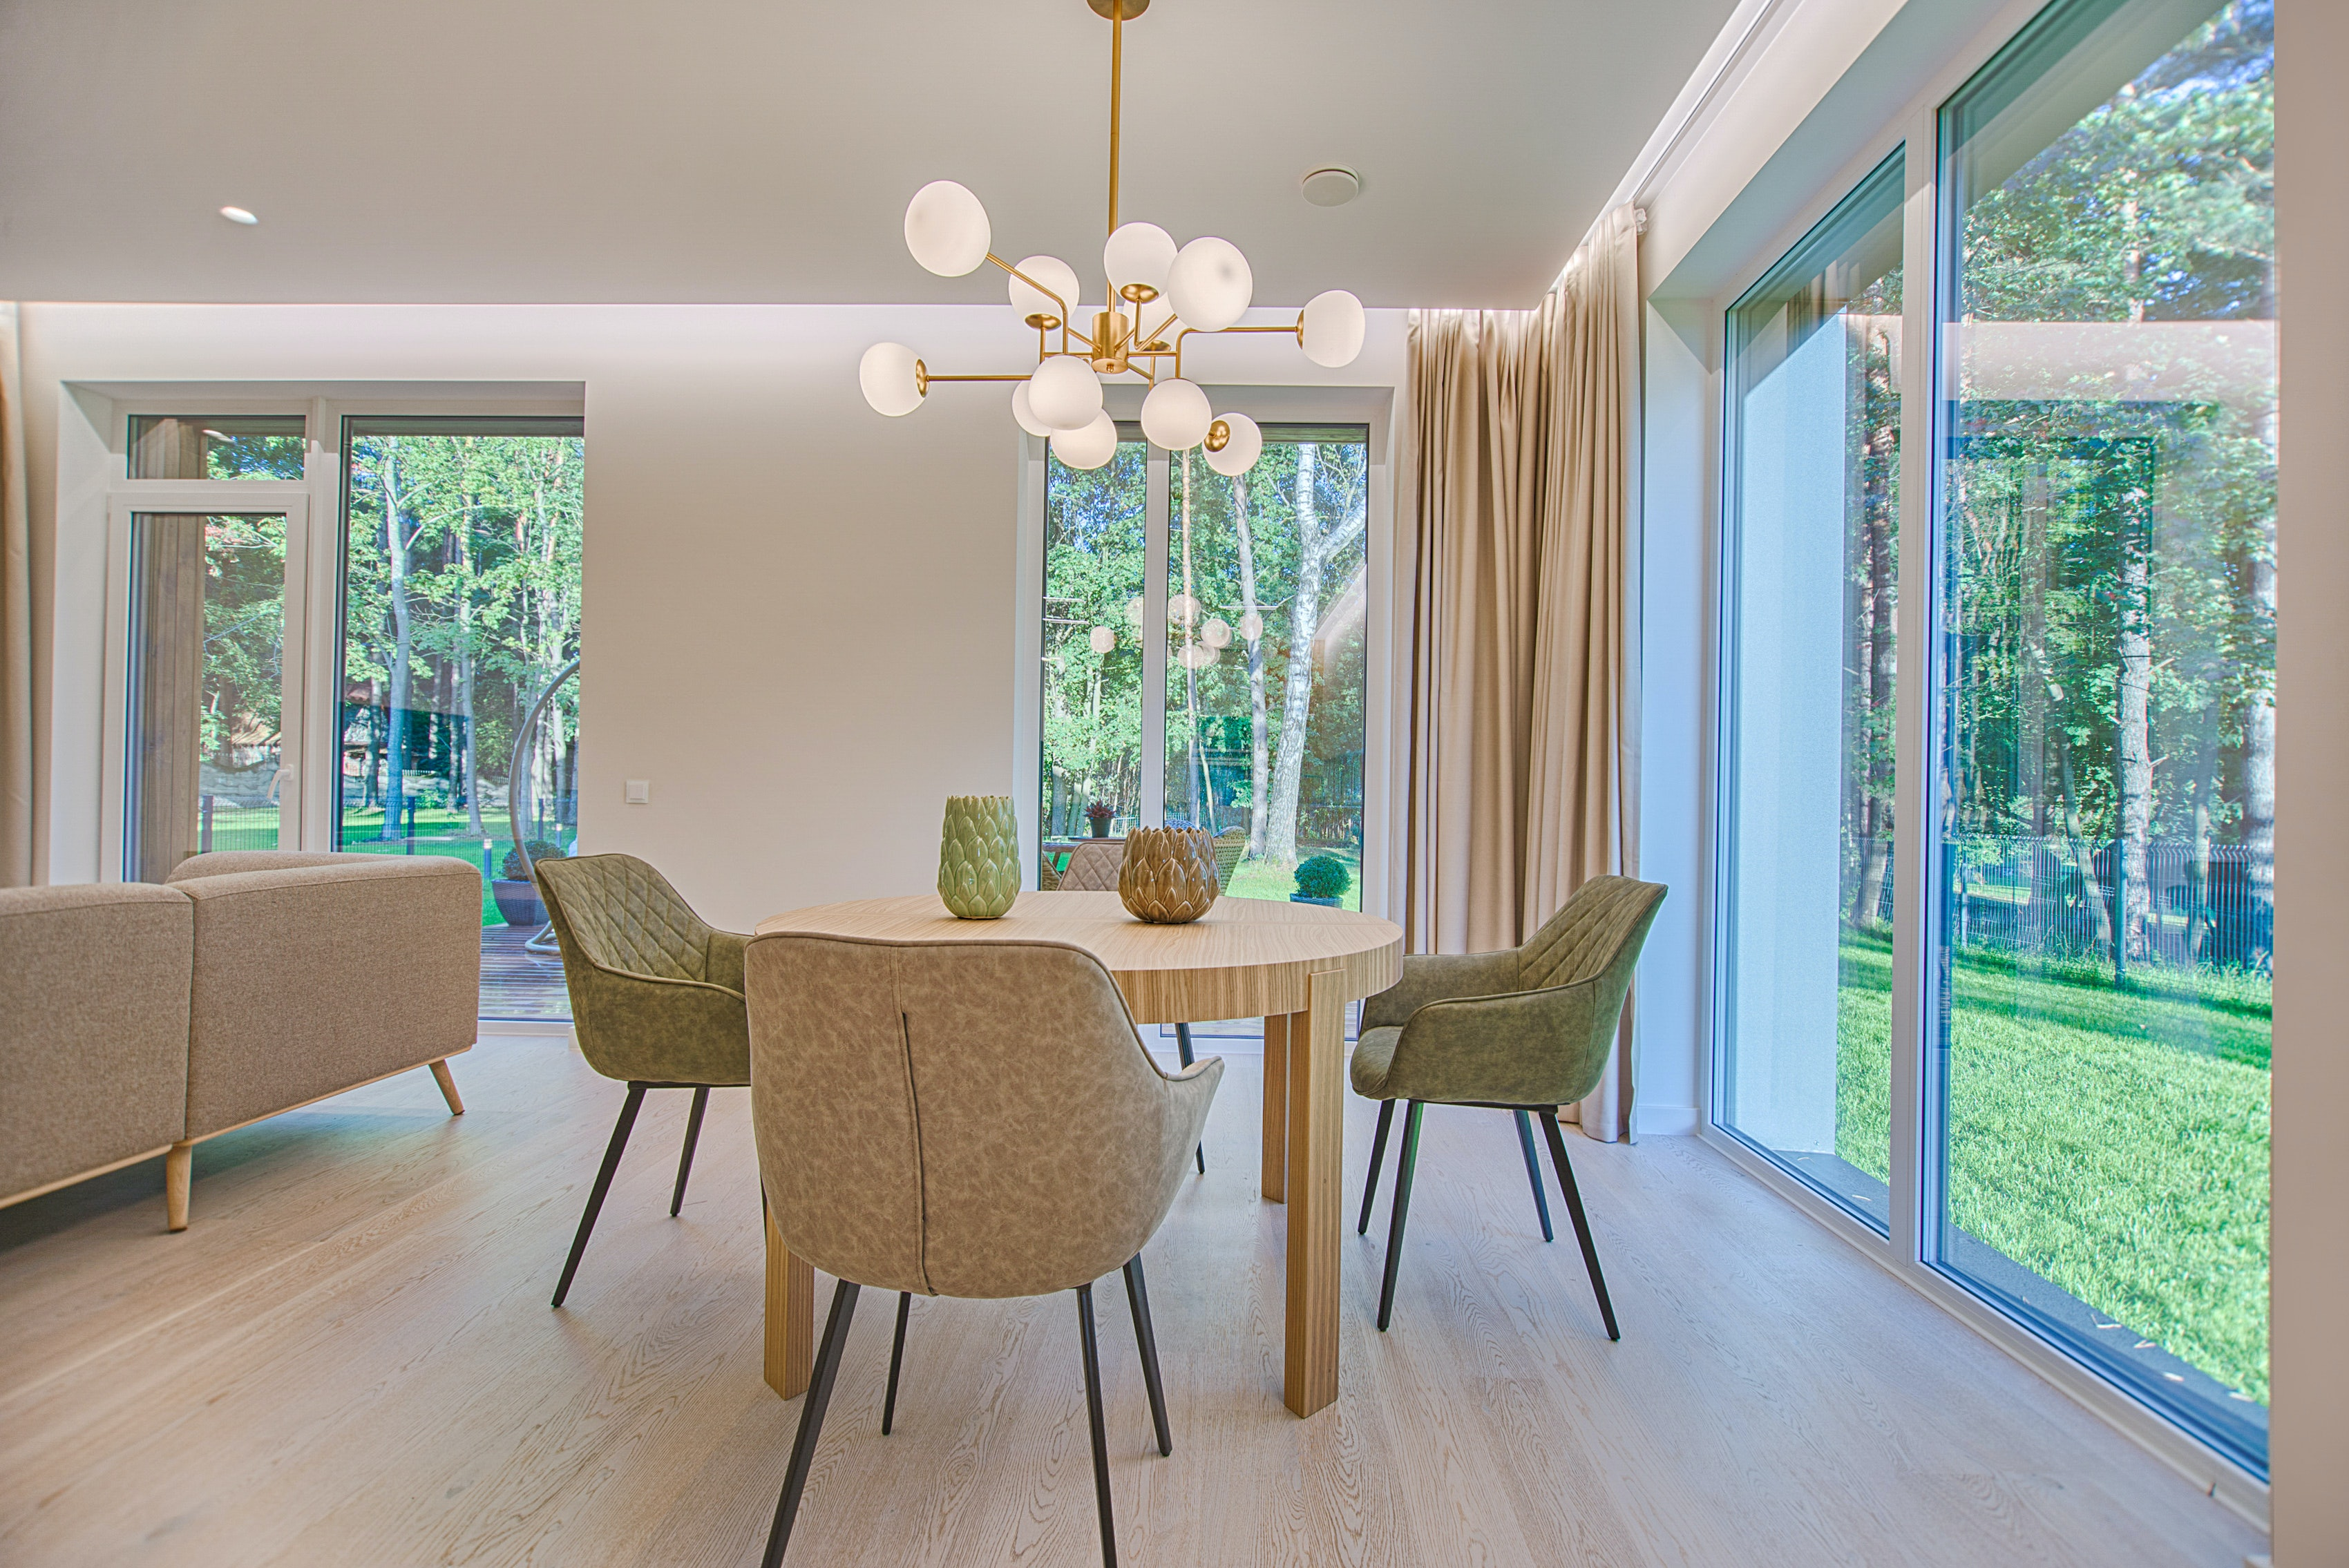 dining room with wooden table and 4 chairs